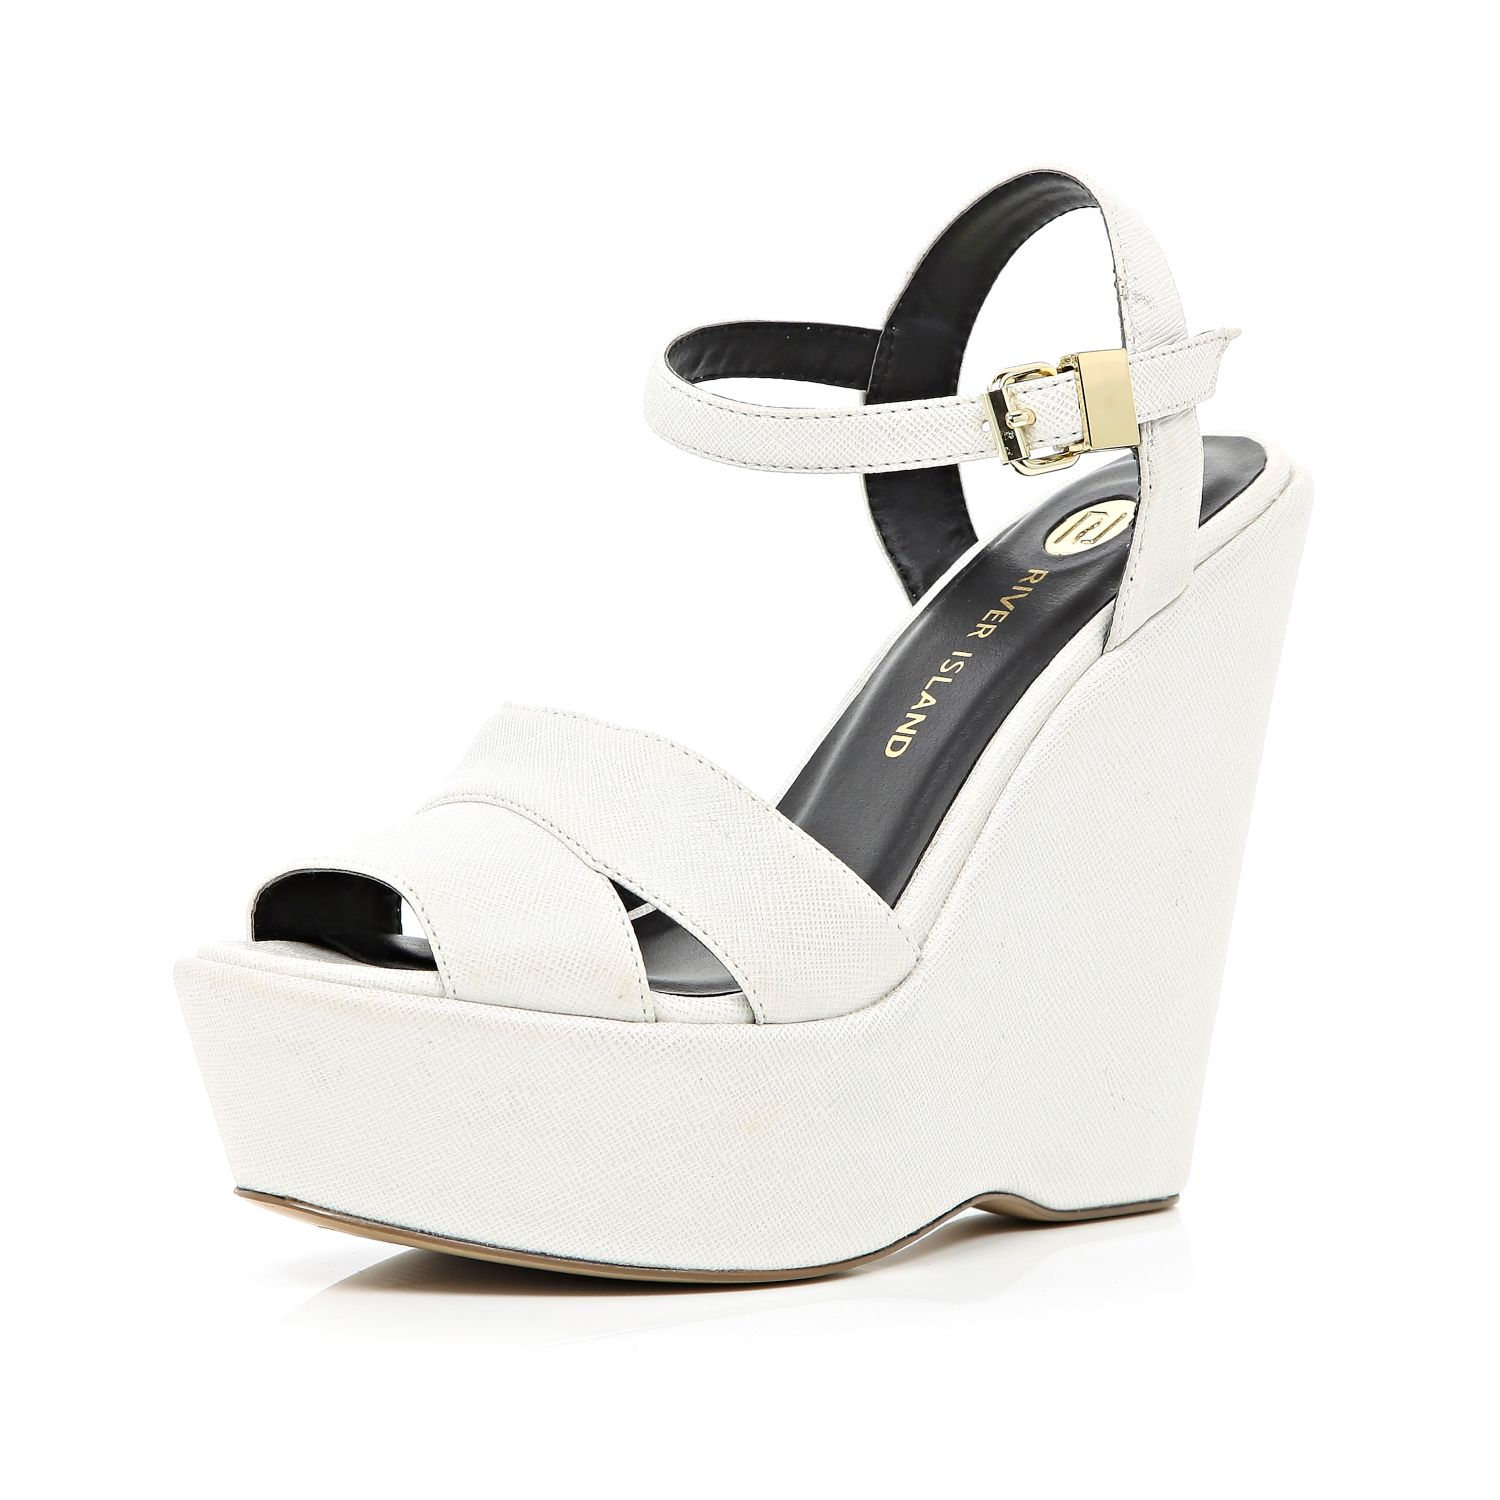 fdb54a49330 River Island White Wedge Sandals in White - Lyst